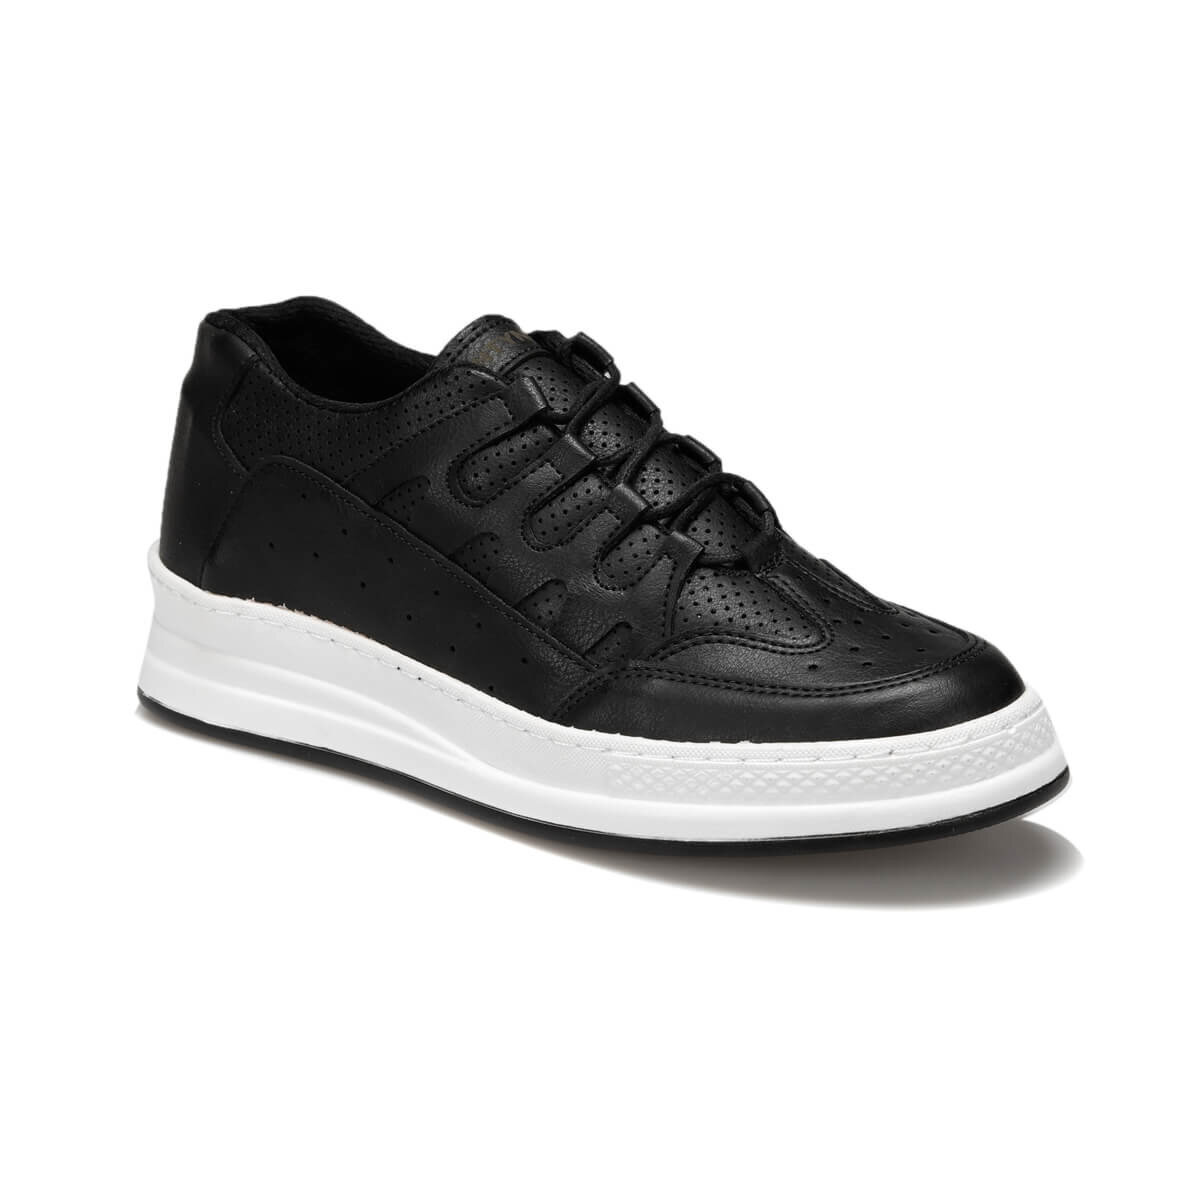 FLO ELM-1 Black Male Shoes Forester